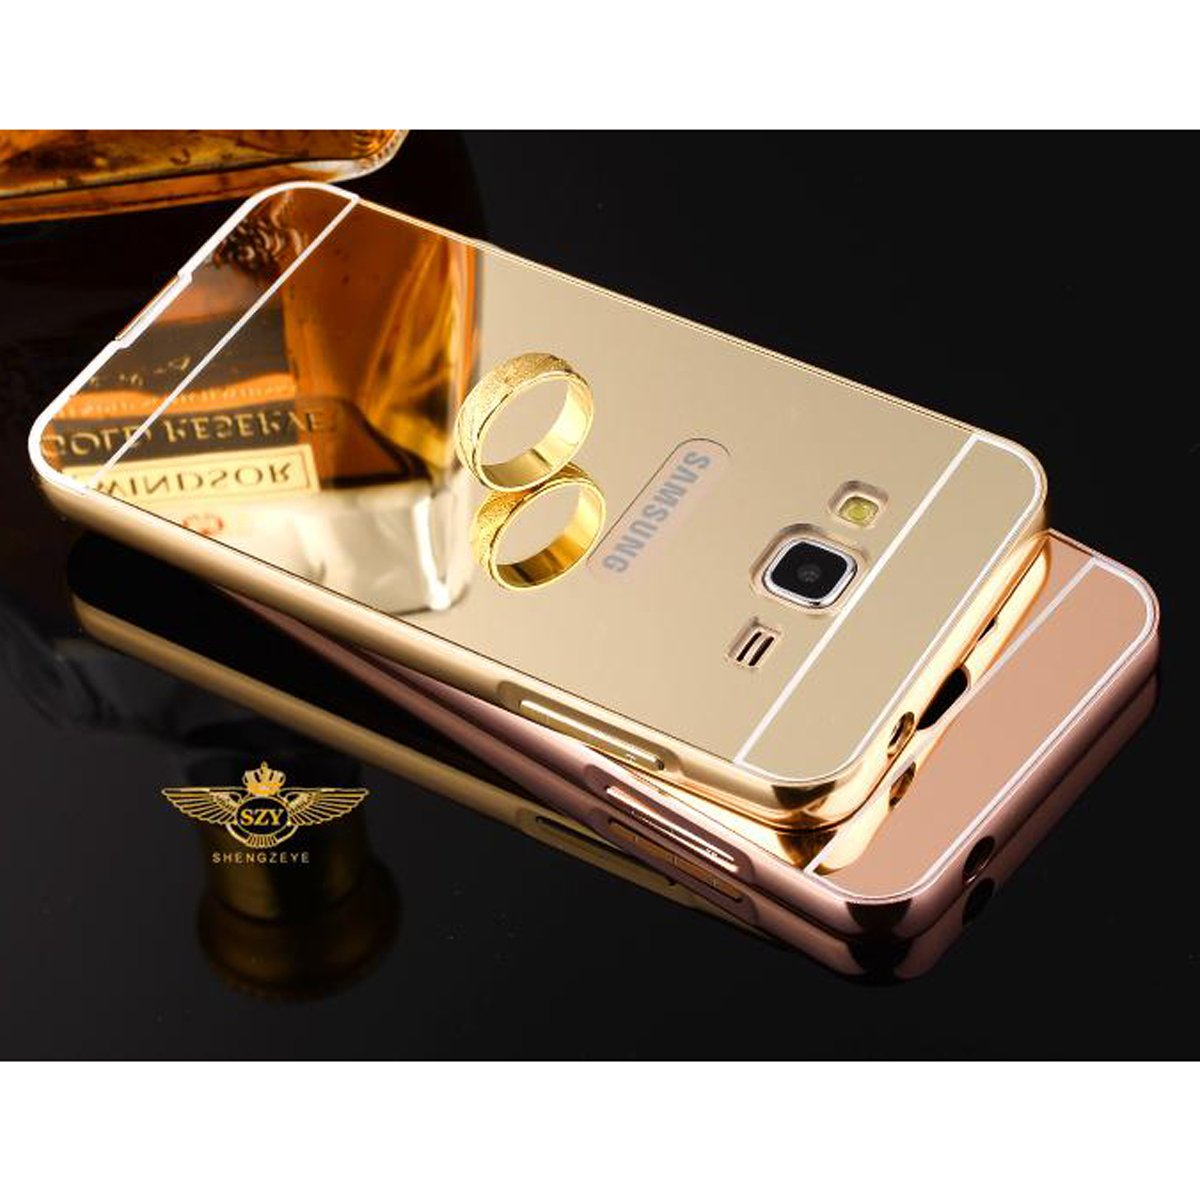 For Samsung Galaxy j3 pro/ j3110 / j3119 / SM-J3110 2016 Phone Mirror Case  Metal Bumper+Acrylic Back Cover Shell Sleeve Pouch Bag (Rose gold)